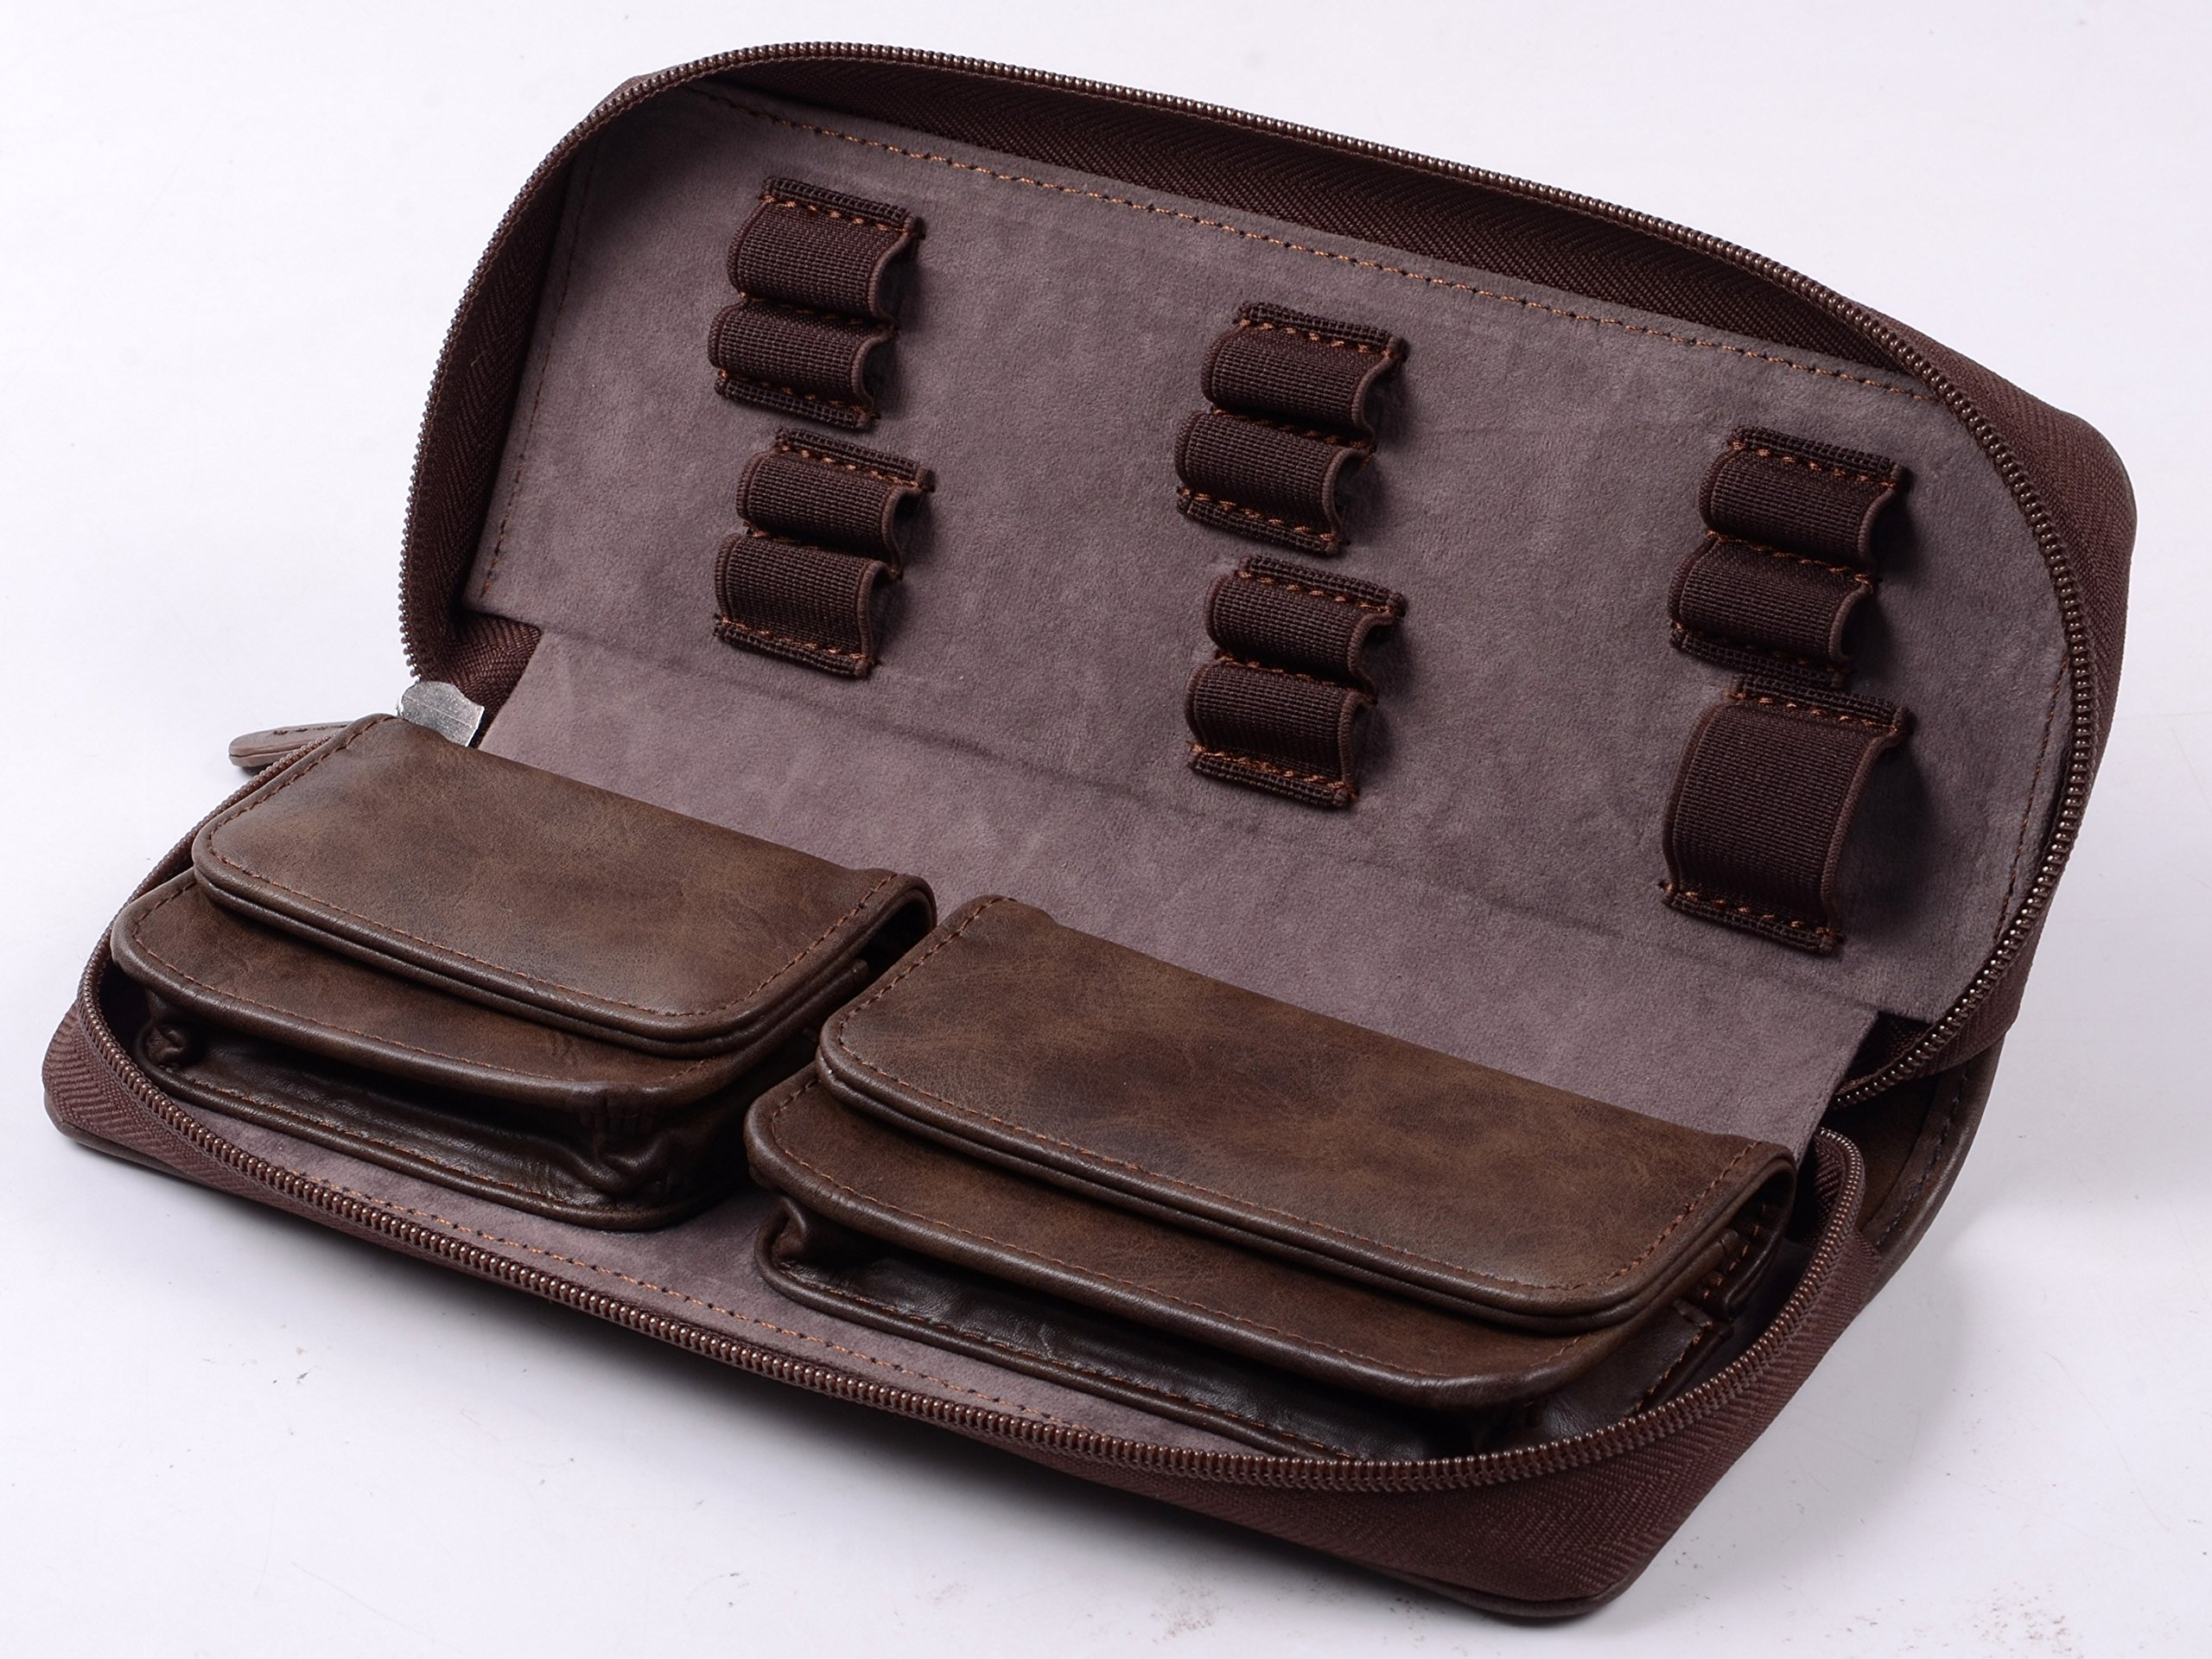 420 and Vape Leather Travel Case - Store Your Batteries Concentrates, Chillums, Toobs, Grinders, and Other 420 Accessories! Also Includes Two Built-in Buttom snap Pockets by Tokebox (Image #1)